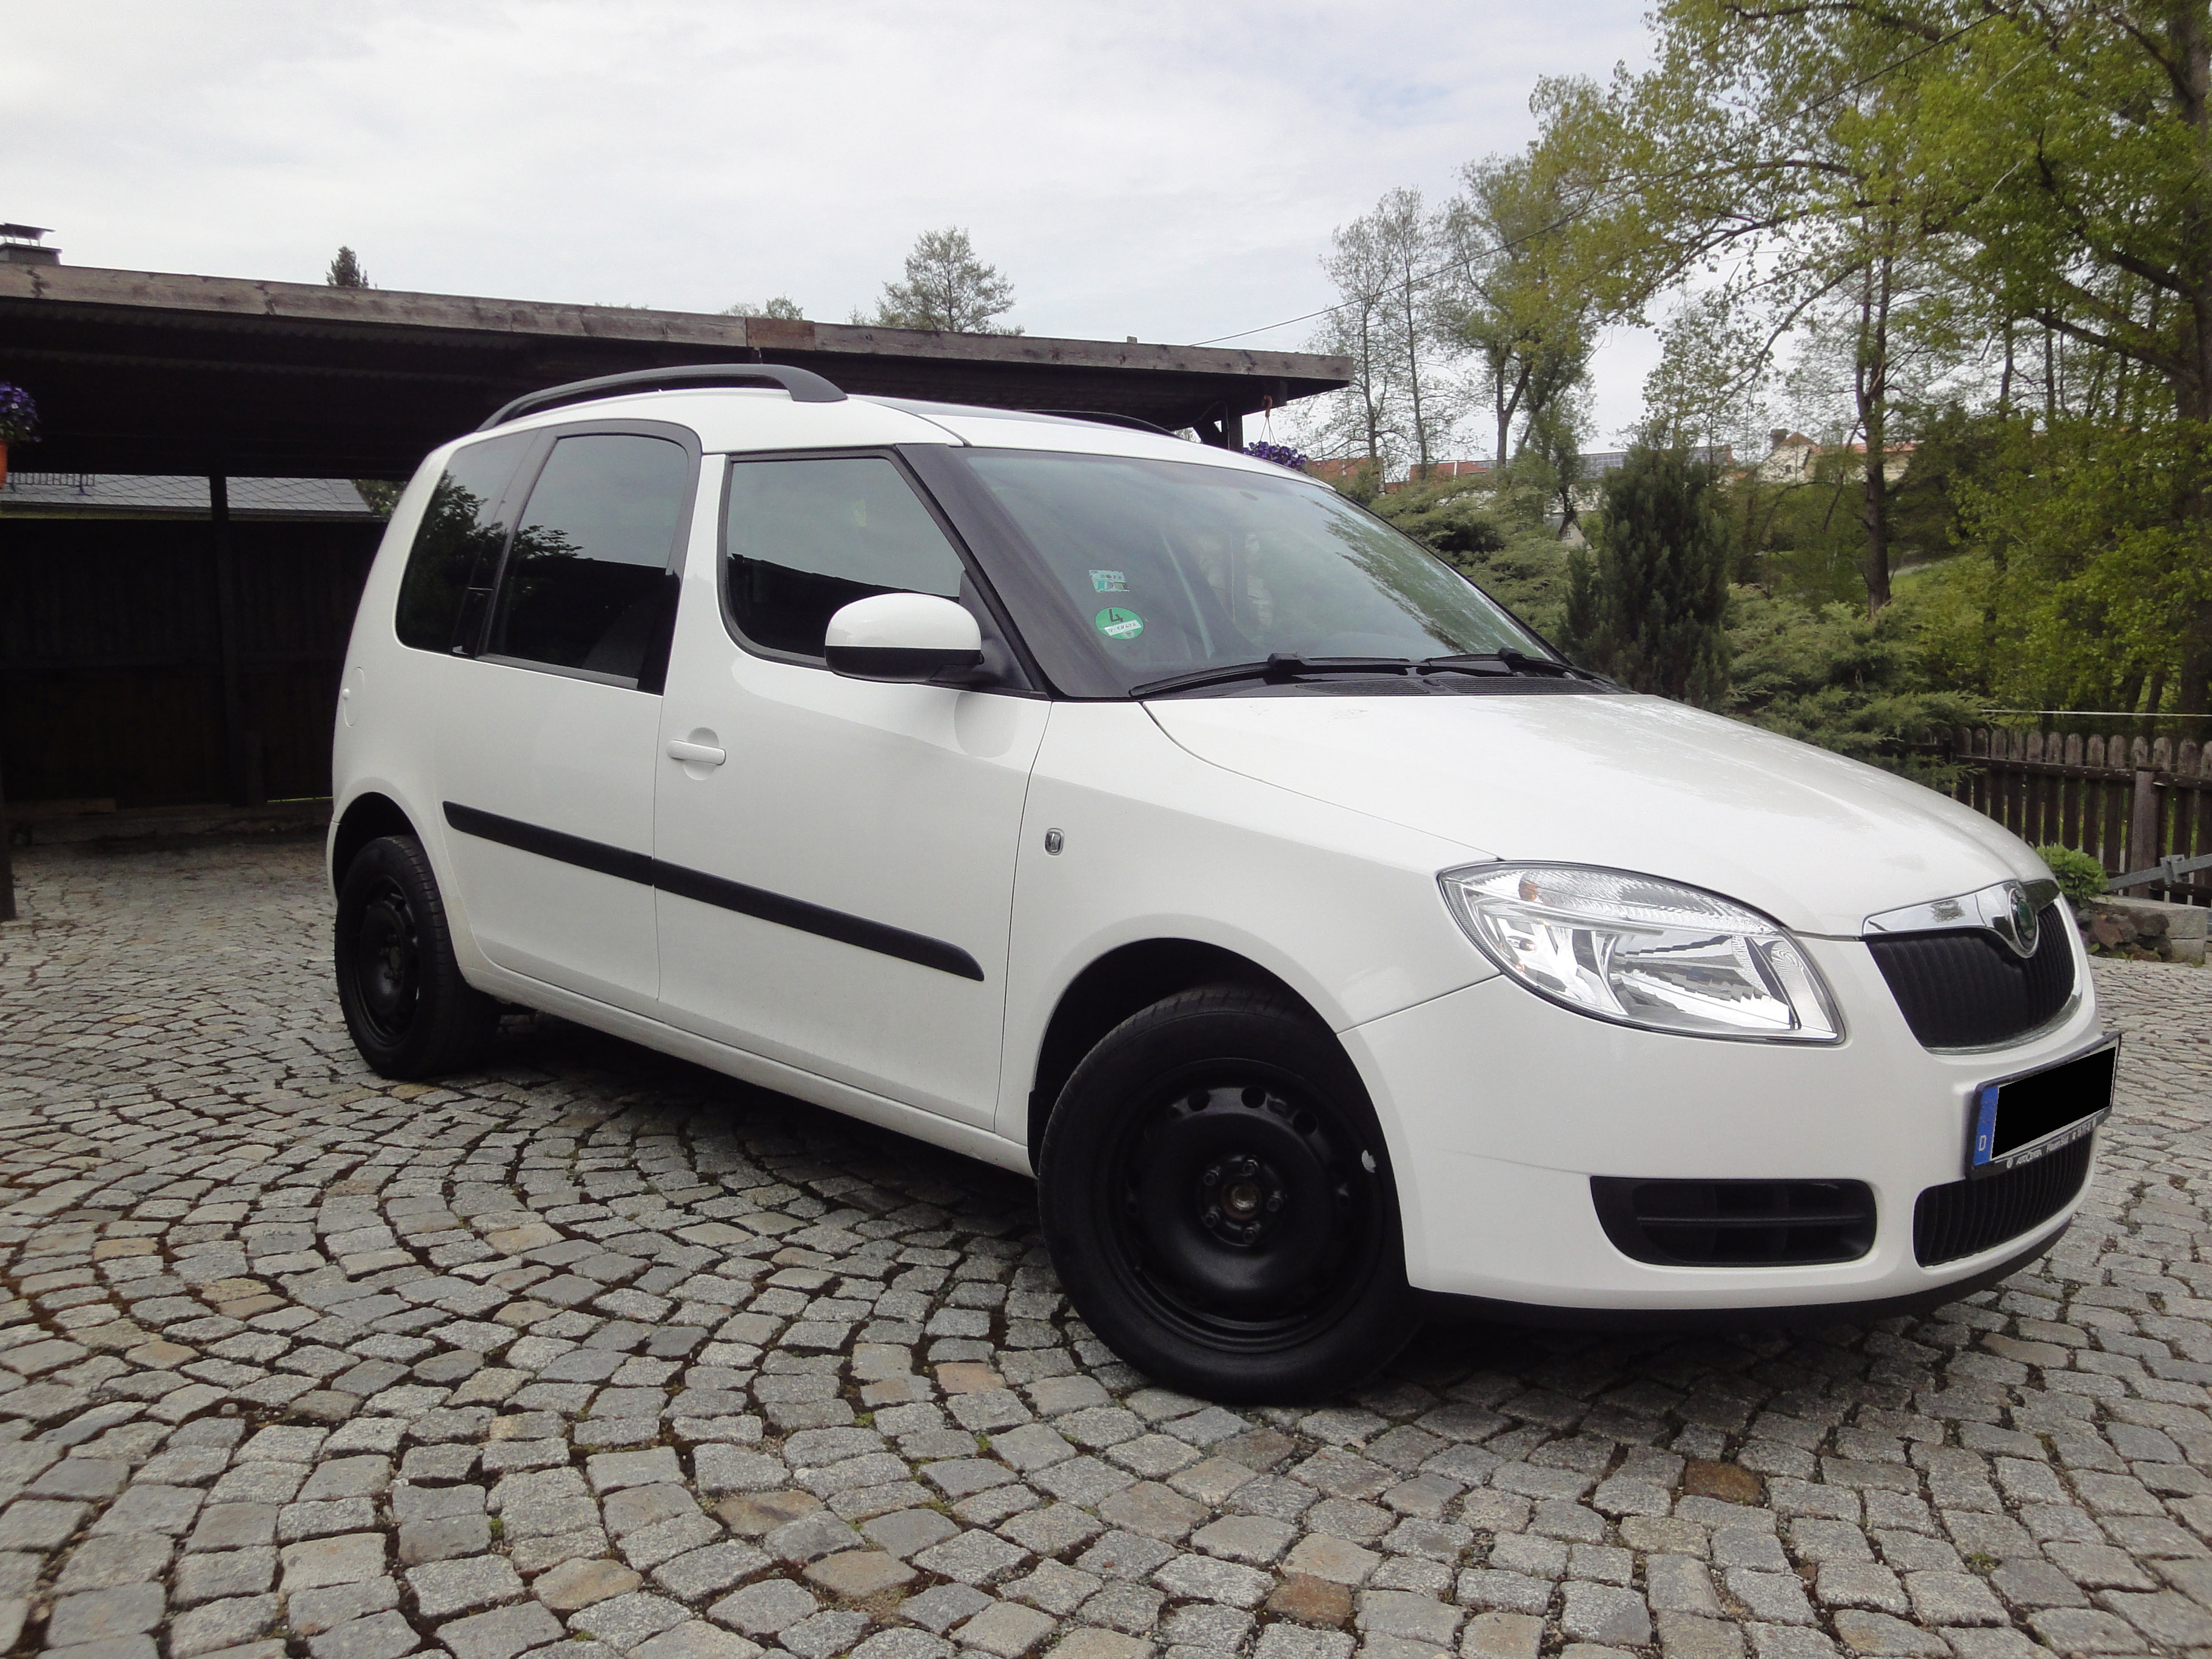 skoda roomster 1 4 16v style plus sondermodell m panoramadach wr biete. Black Bedroom Furniture Sets. Home Design Ideas